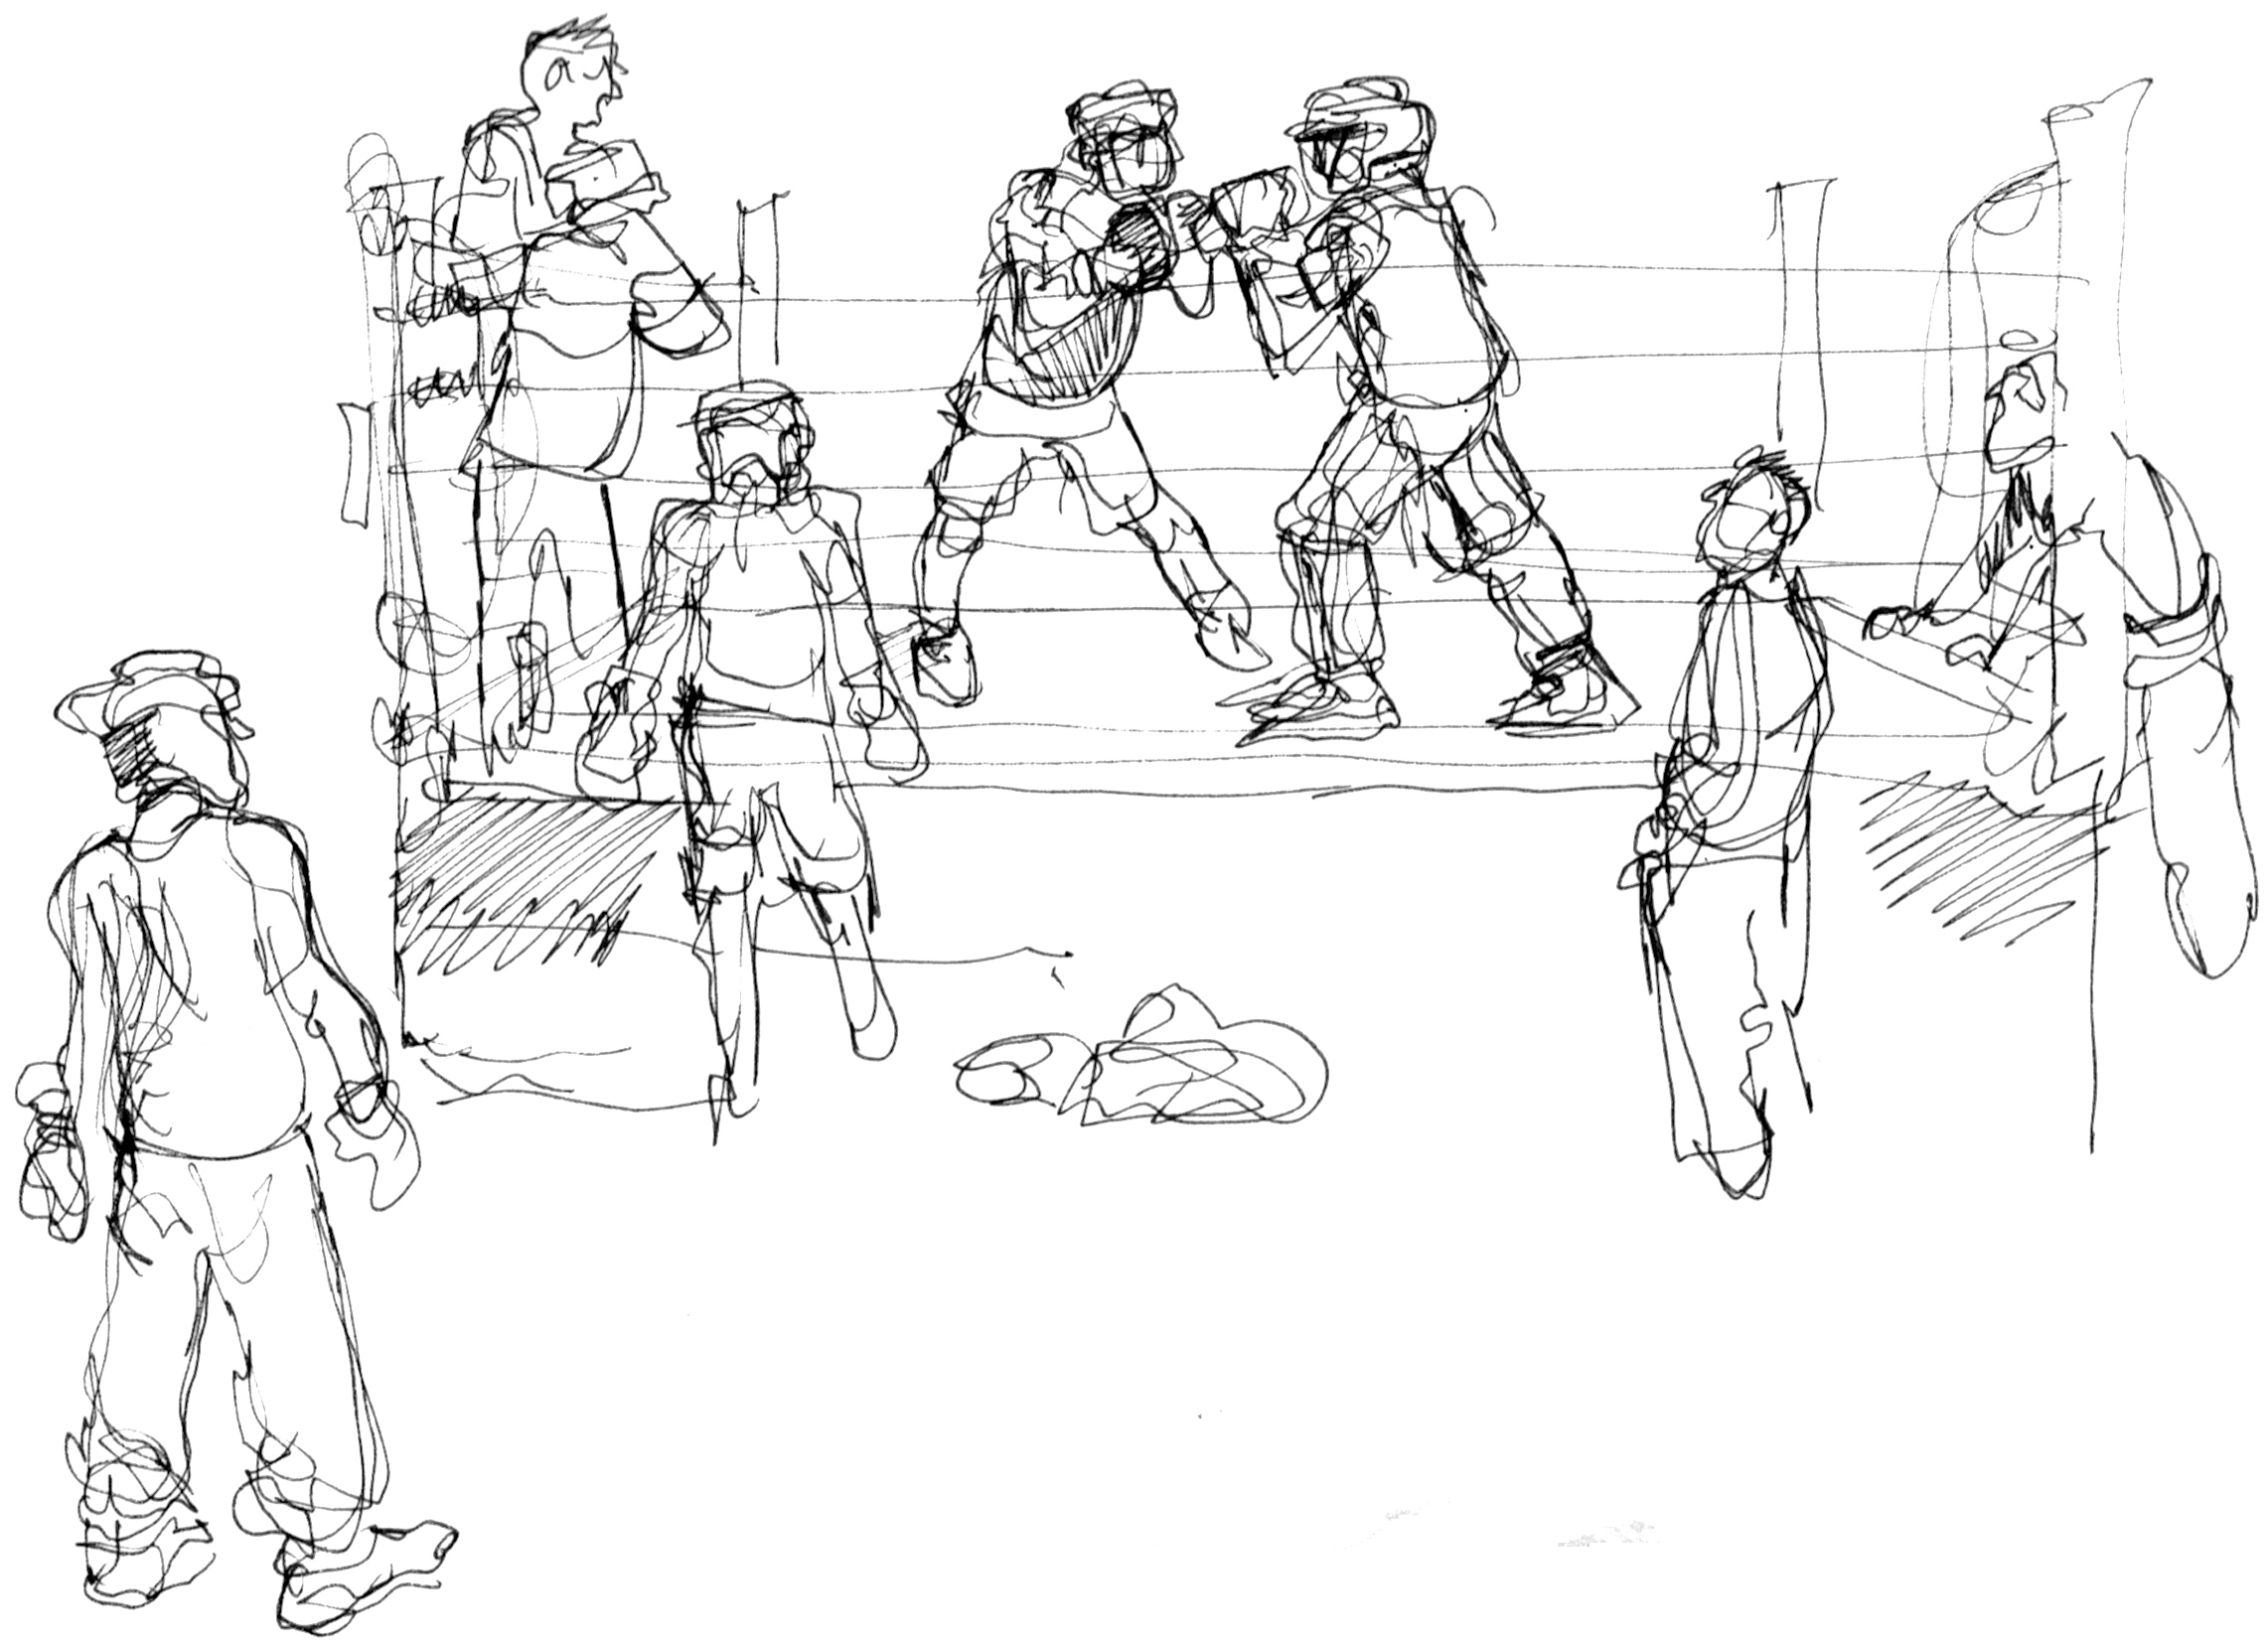 dais reportage drawing people in action boxing